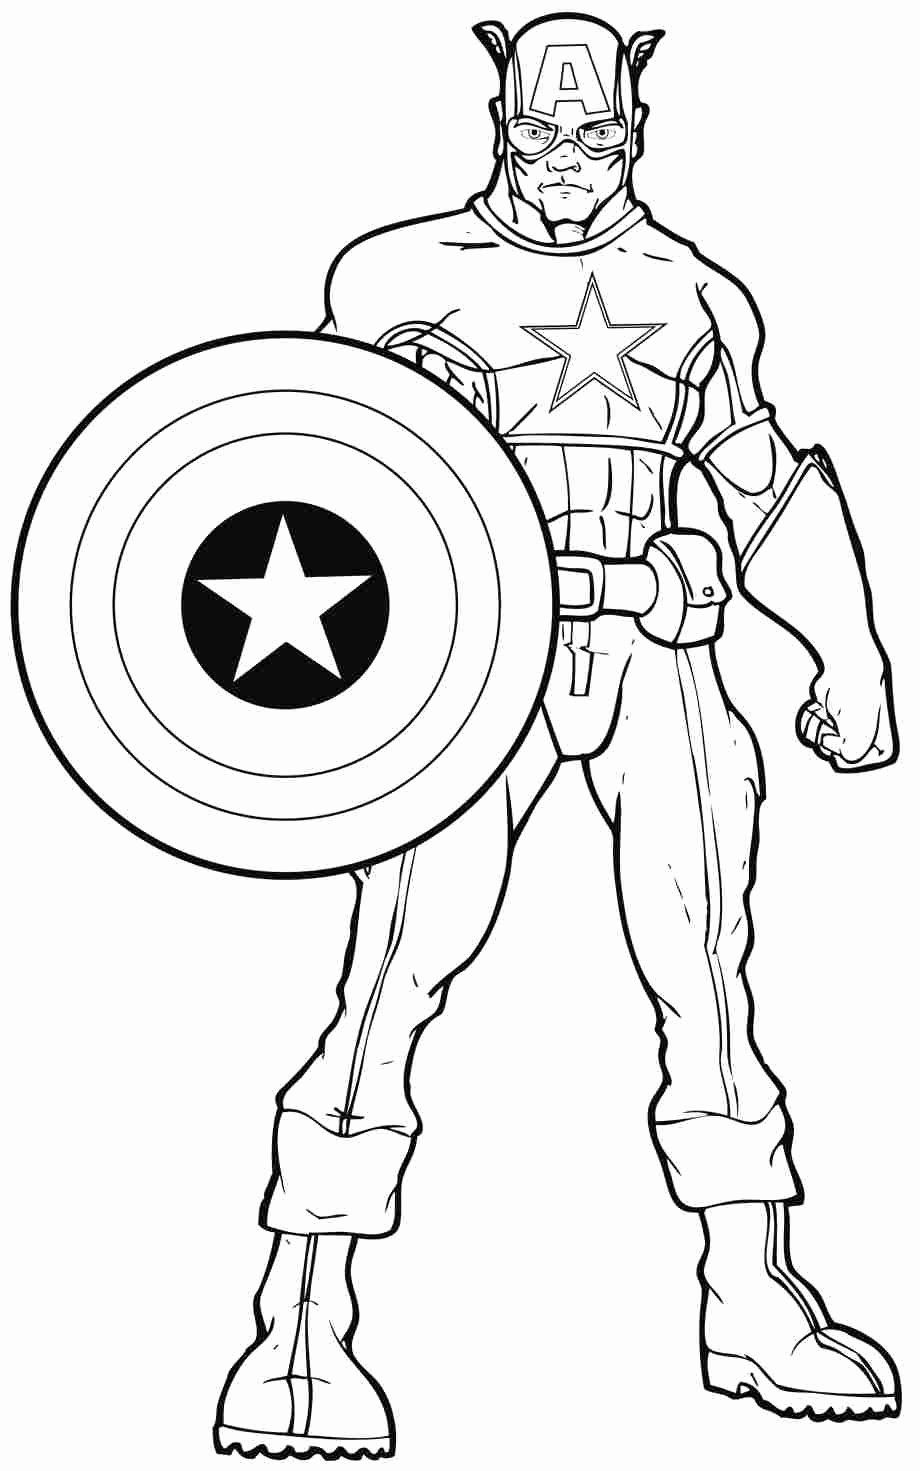 Superhero Coloring Books New Coloring Pages Superheroes Printables Coloring Home Superhero Coloring Superhero Coloring Pages Avengers Coloring